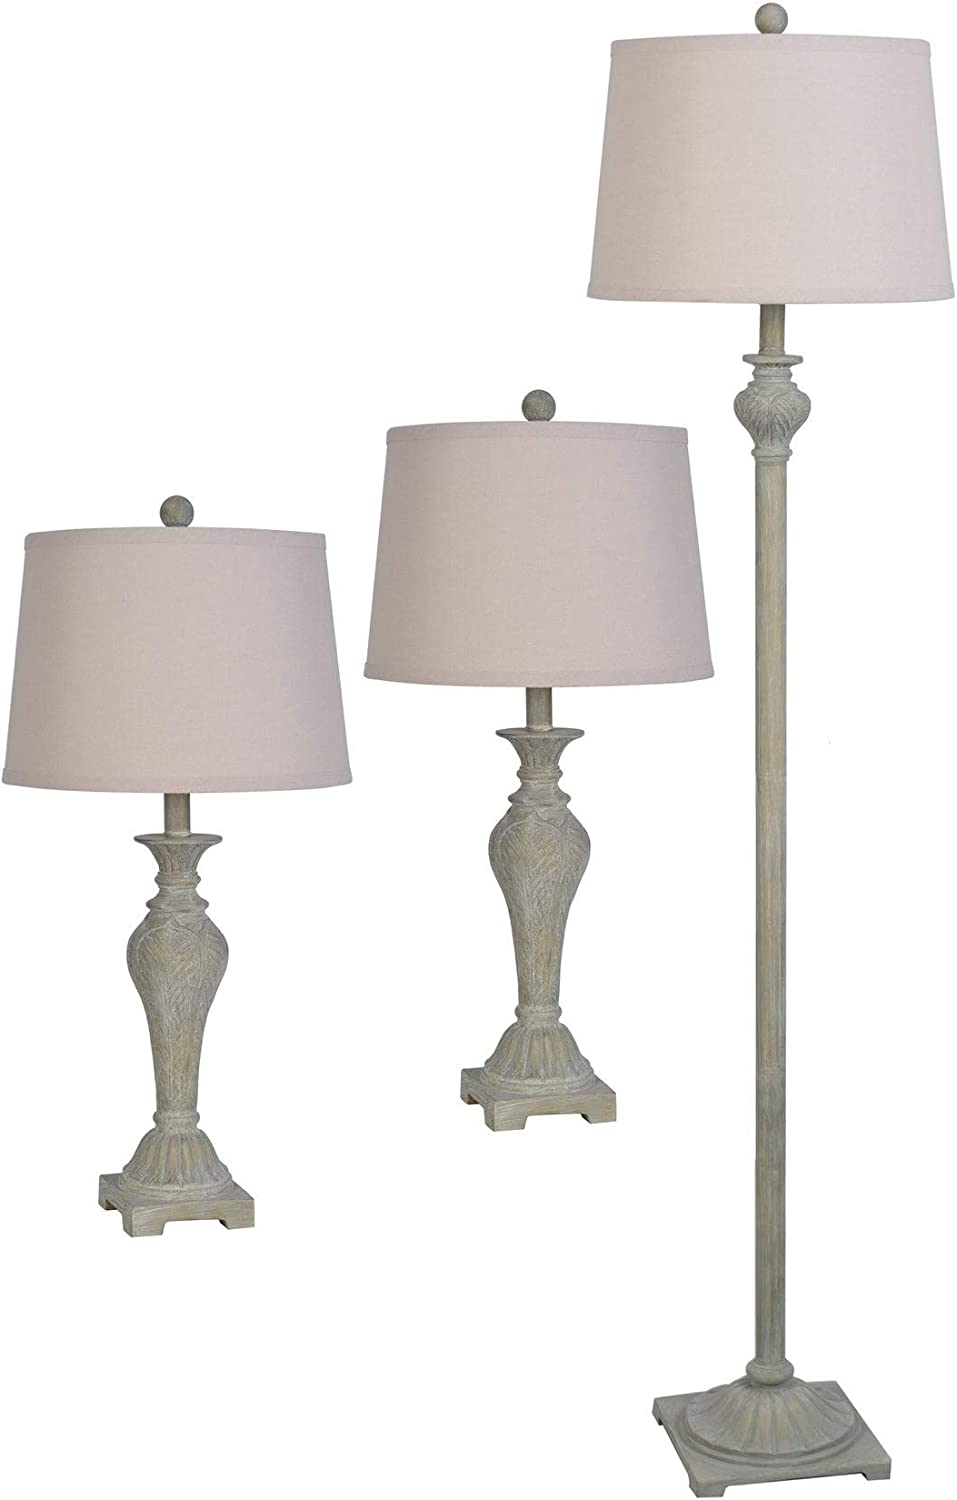 3 Piece Set Lamps Per Se Rusted Gold and Grey Lamp Set N//a Nautical Coastal Traditional Transitional